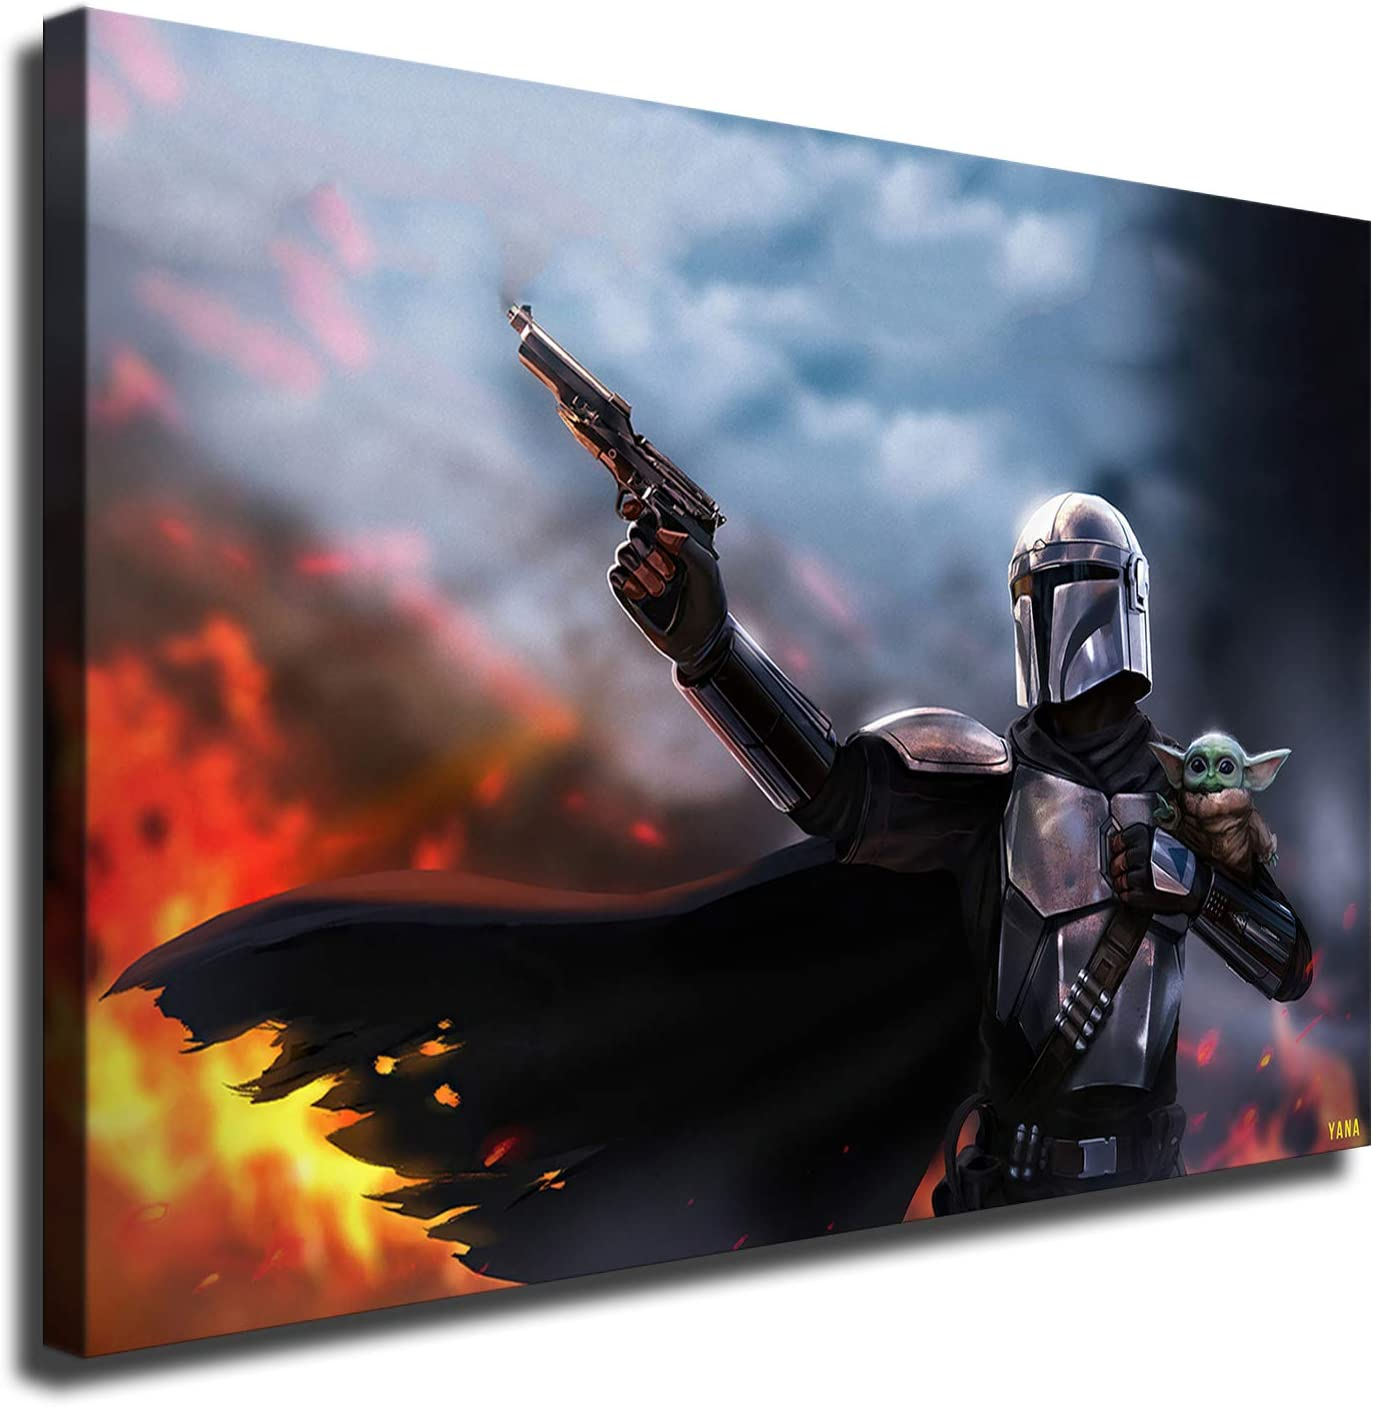 Amazon Com Star Wars Poster Baby Yoda And The Mandalorian Hd Canvas Wall Art Paintings 16x24inch No Framed Posters Prints